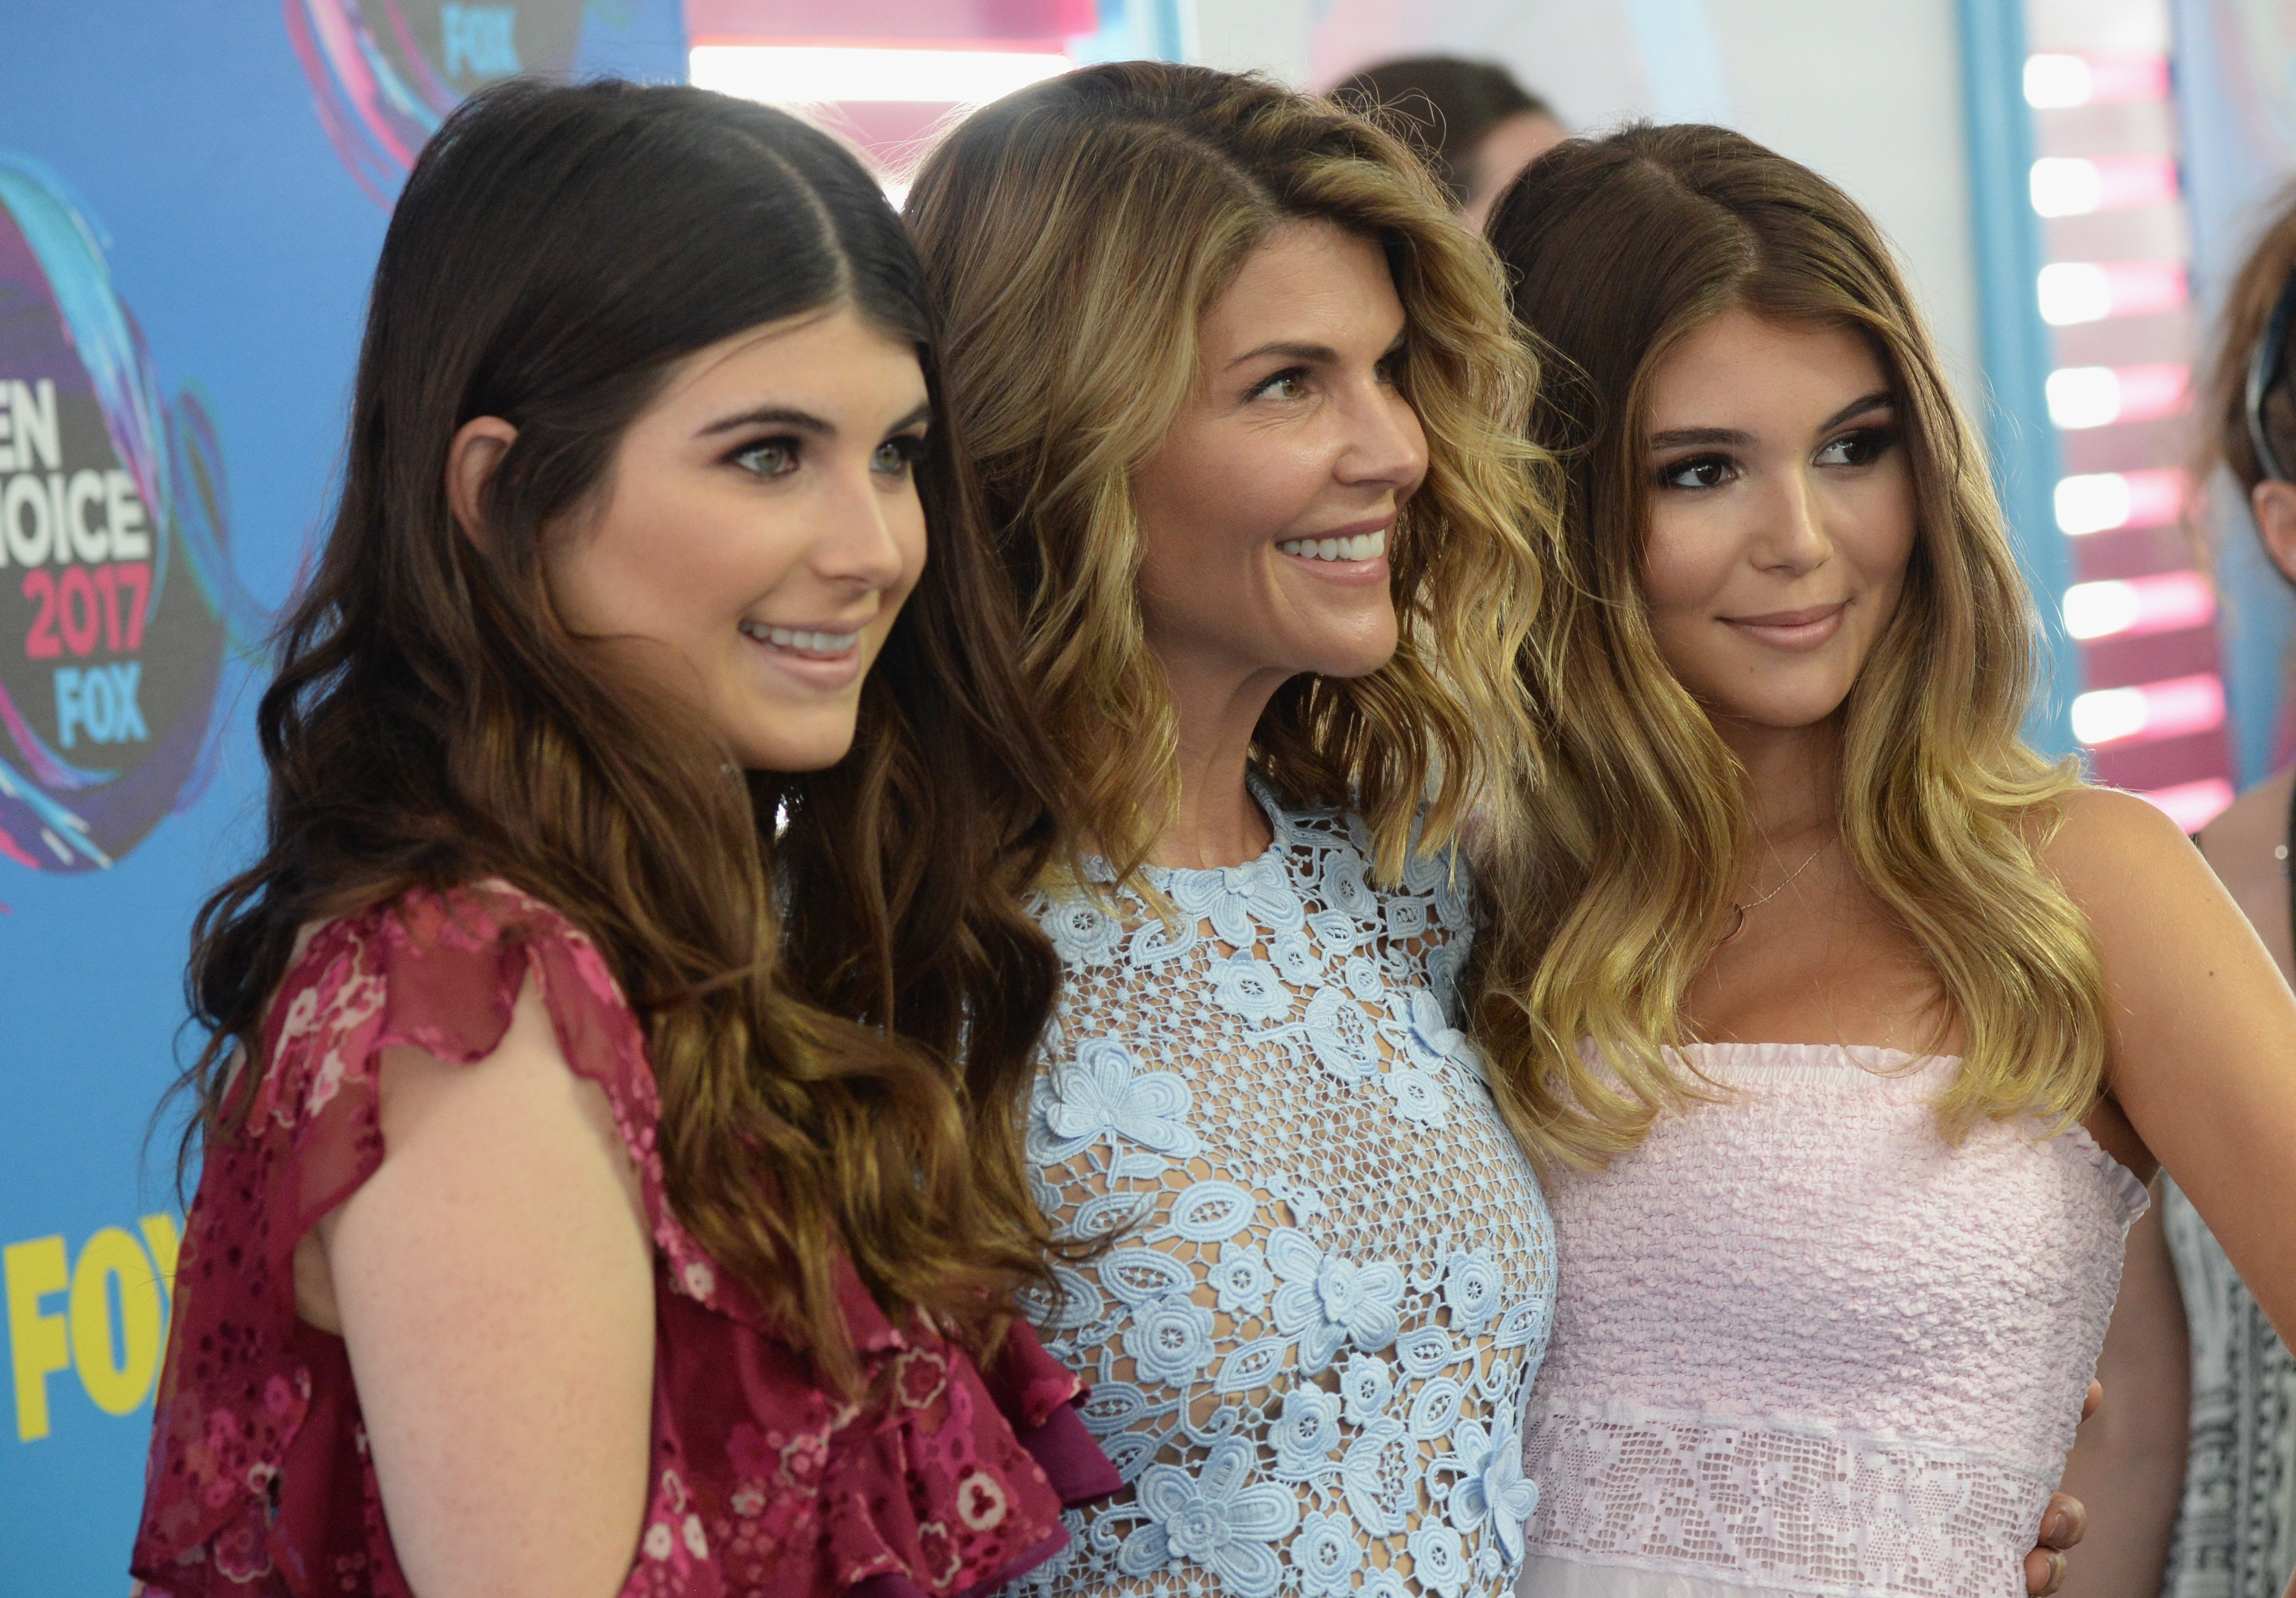 Lori Loughlin with her daughters Isabella Rose and Olivia Jade at the 2017 Teen Choice Awards   Photo: Getty Images